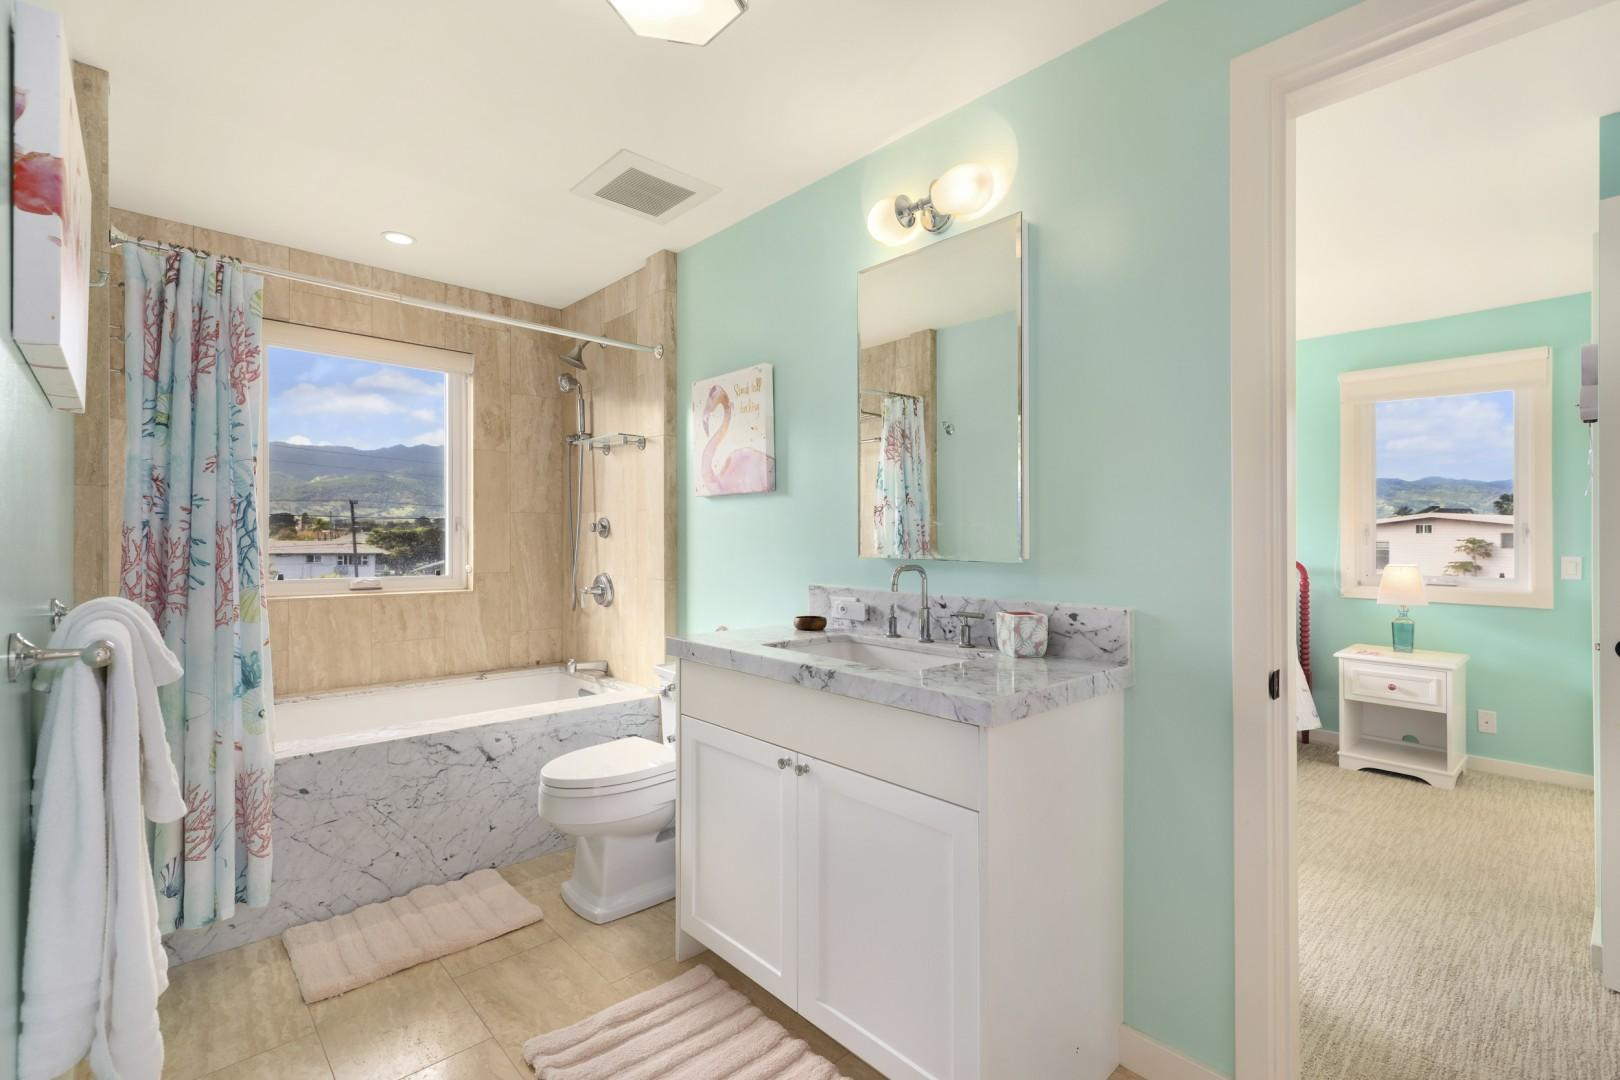 Jack-and-Jill bathroom with mountain views and whirlpool tub.